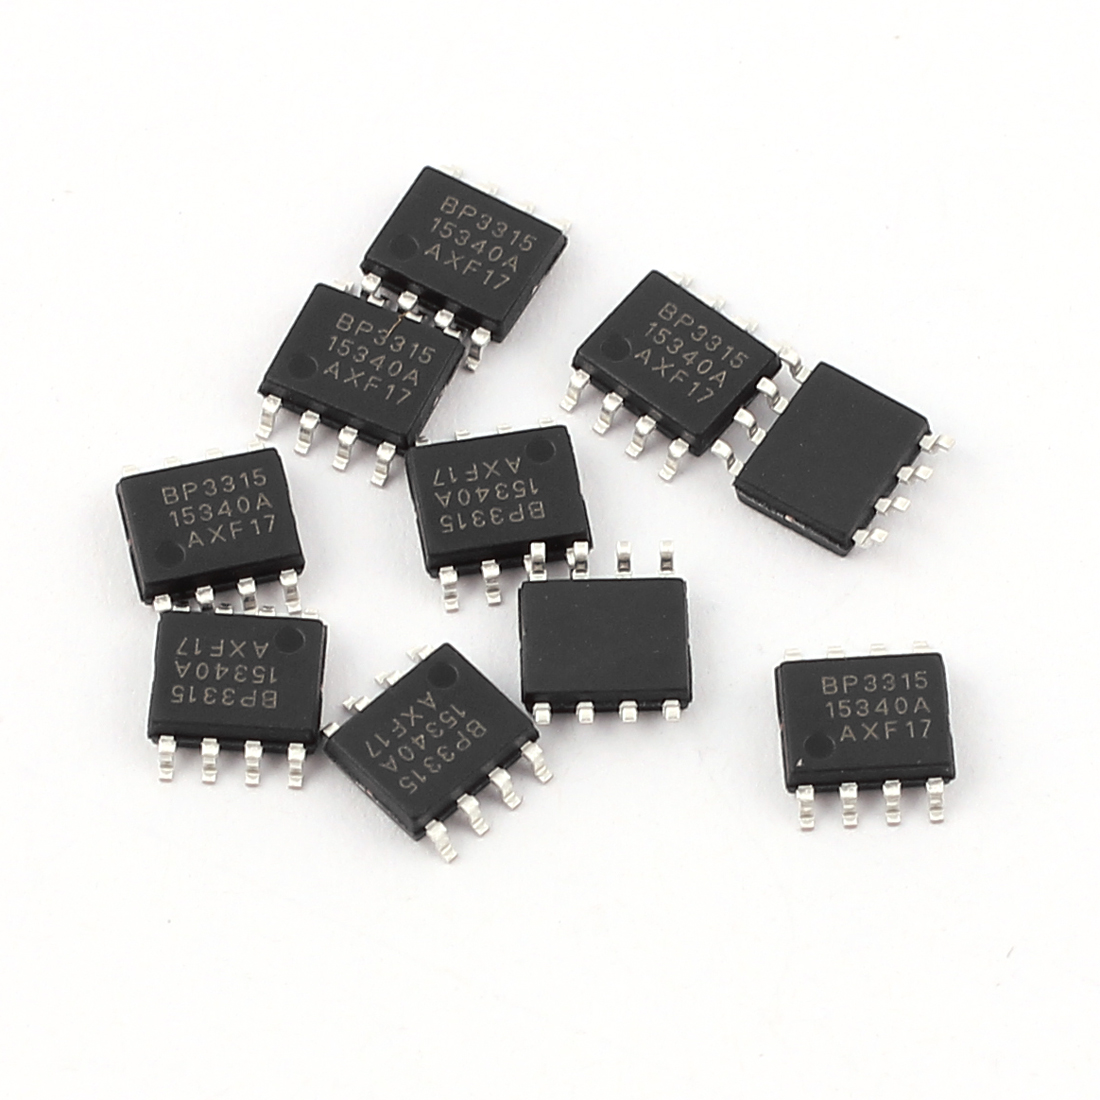 10Pcs BP3315 SOP-8 SMD SMT Type PCB Surface Mount LED Driver Circuit Module Integrated Circuit IC Chip